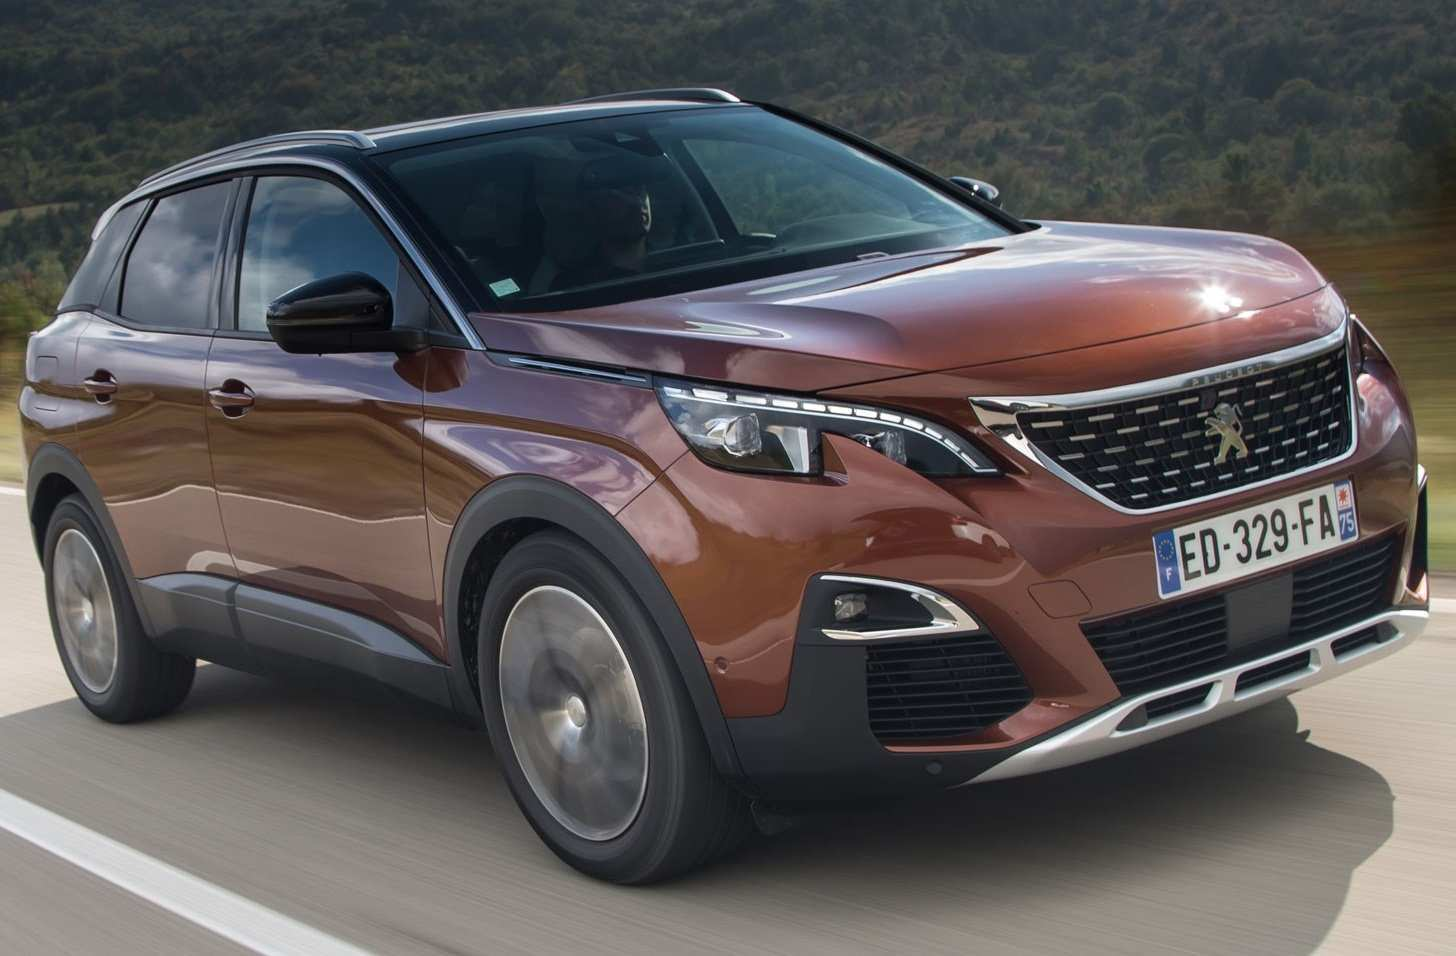 78 All New Peugeot Bis 2019 Specs and Review by Peugeot Bis 2019